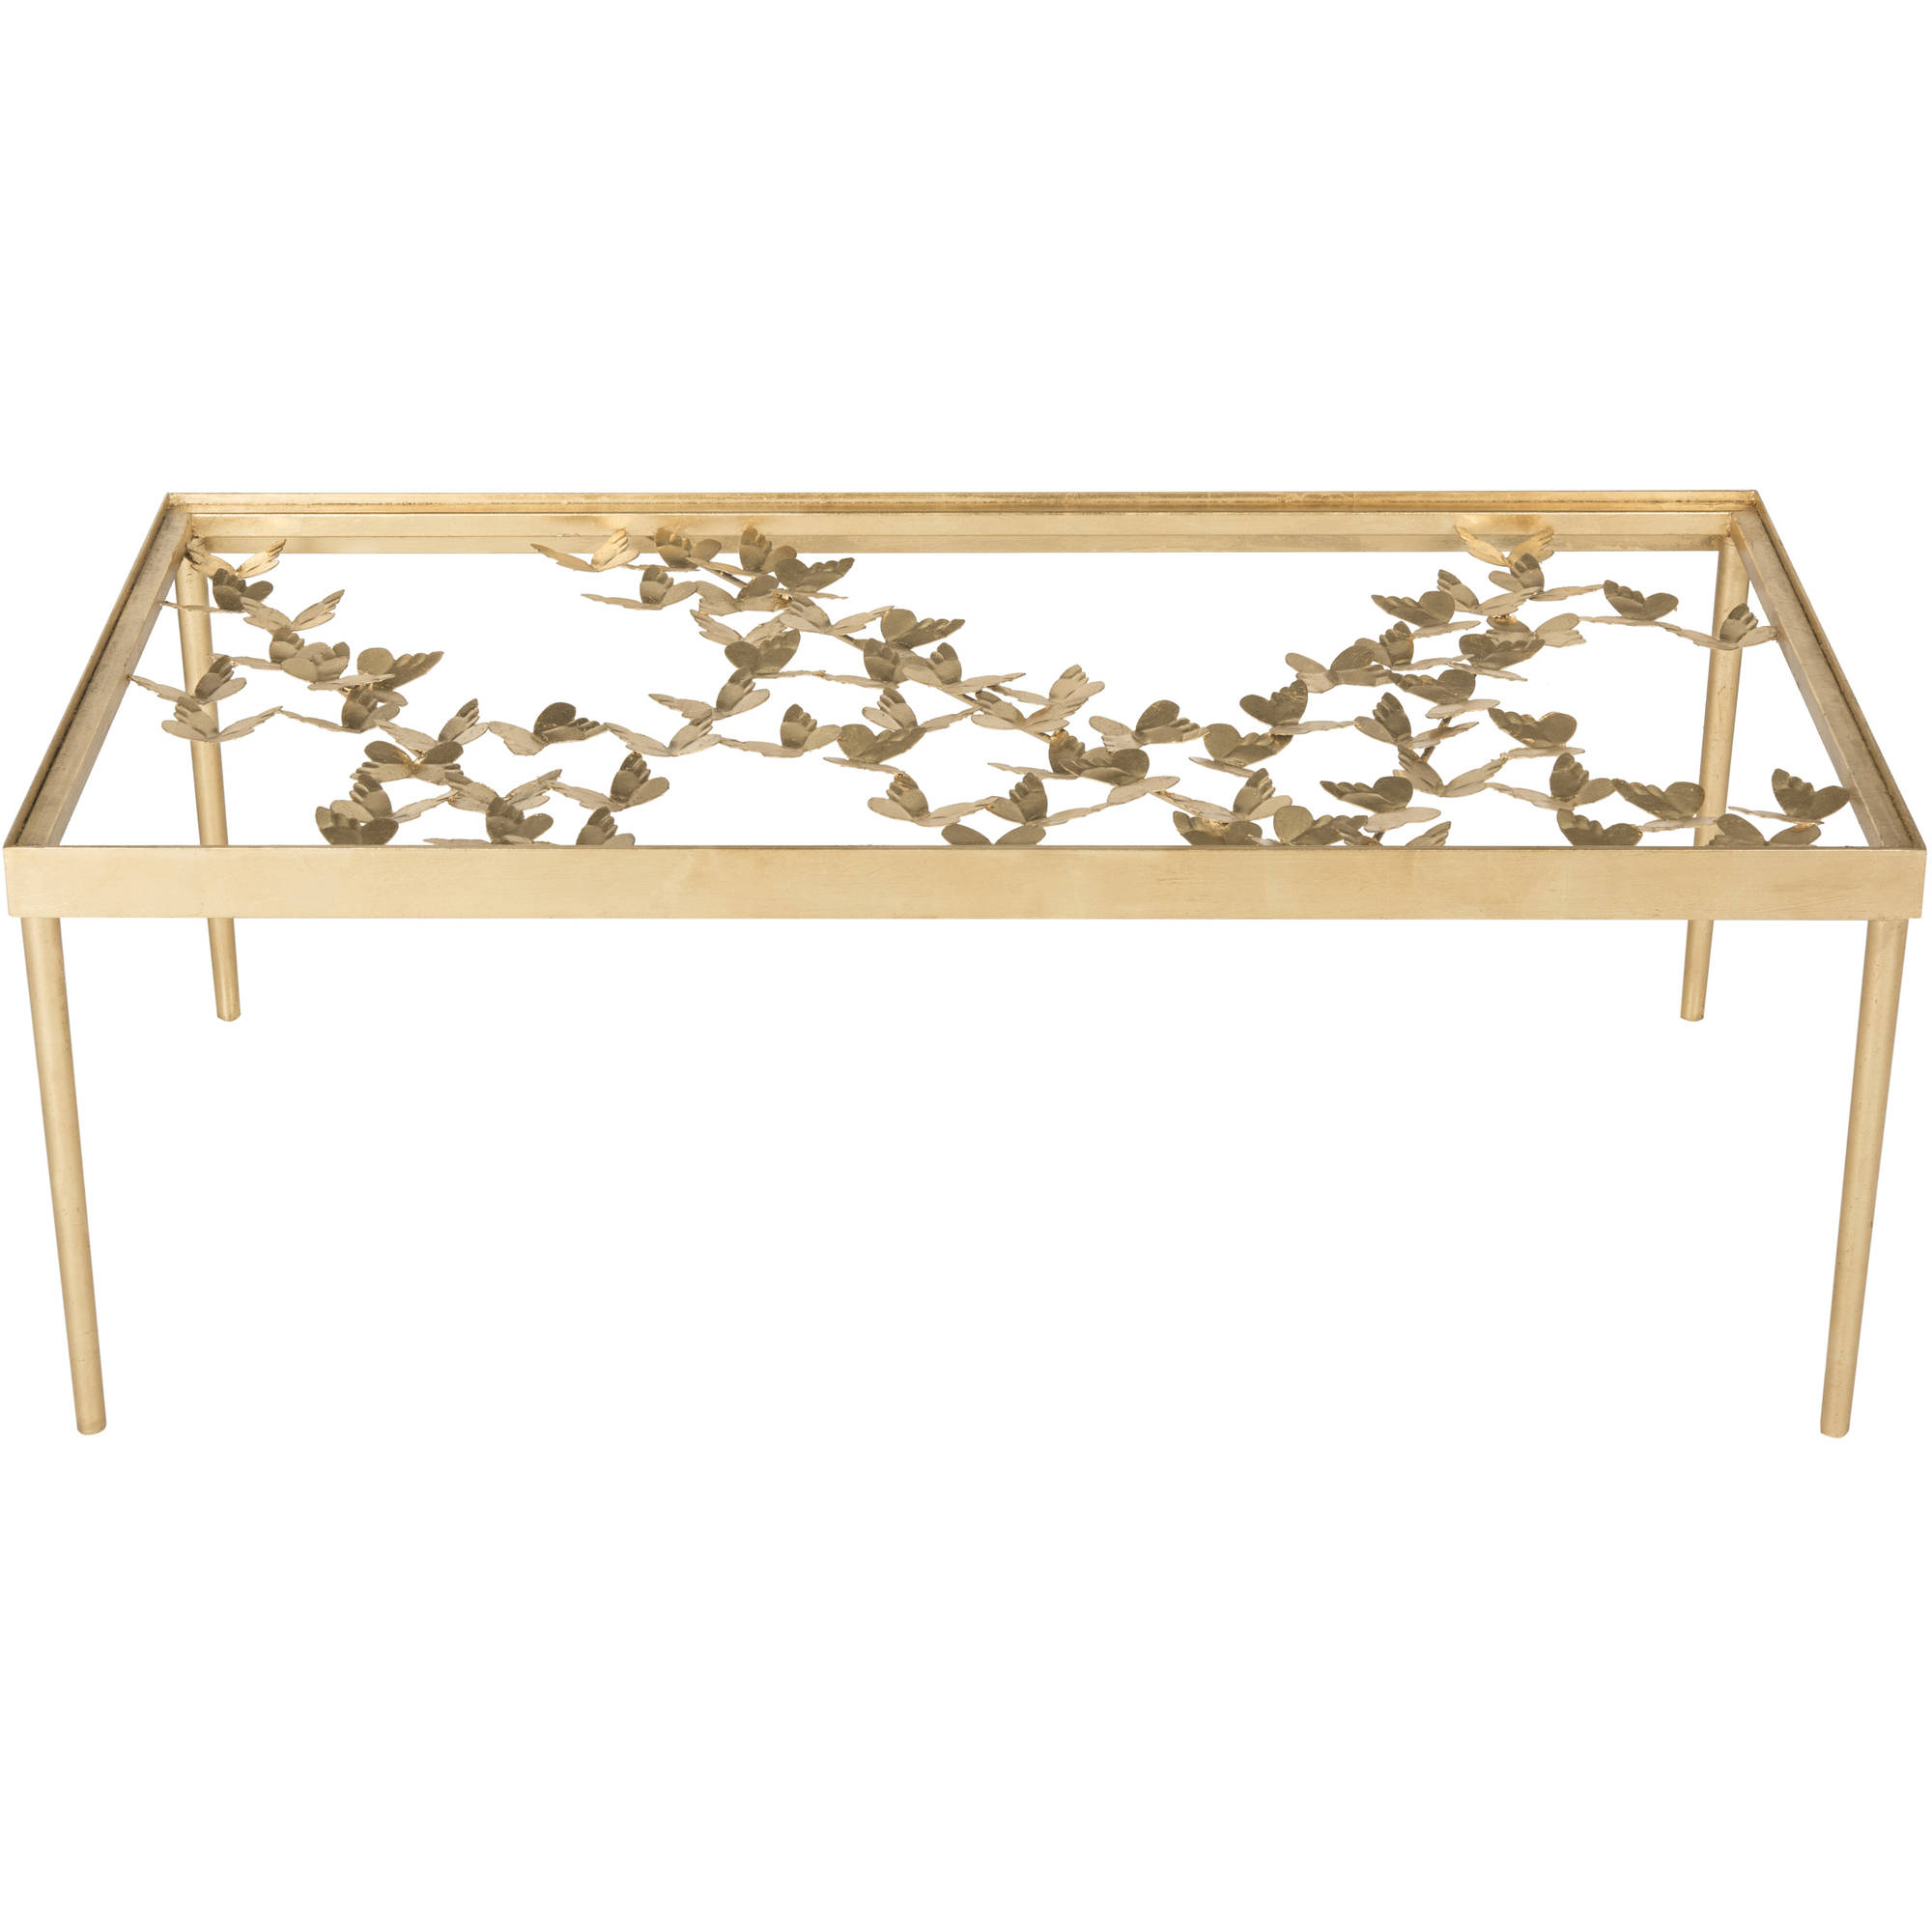 "Safavieh Rosalia 48"" Width Butterfly Coffee Table, Antique Gold Leaf w/ Glass Top"